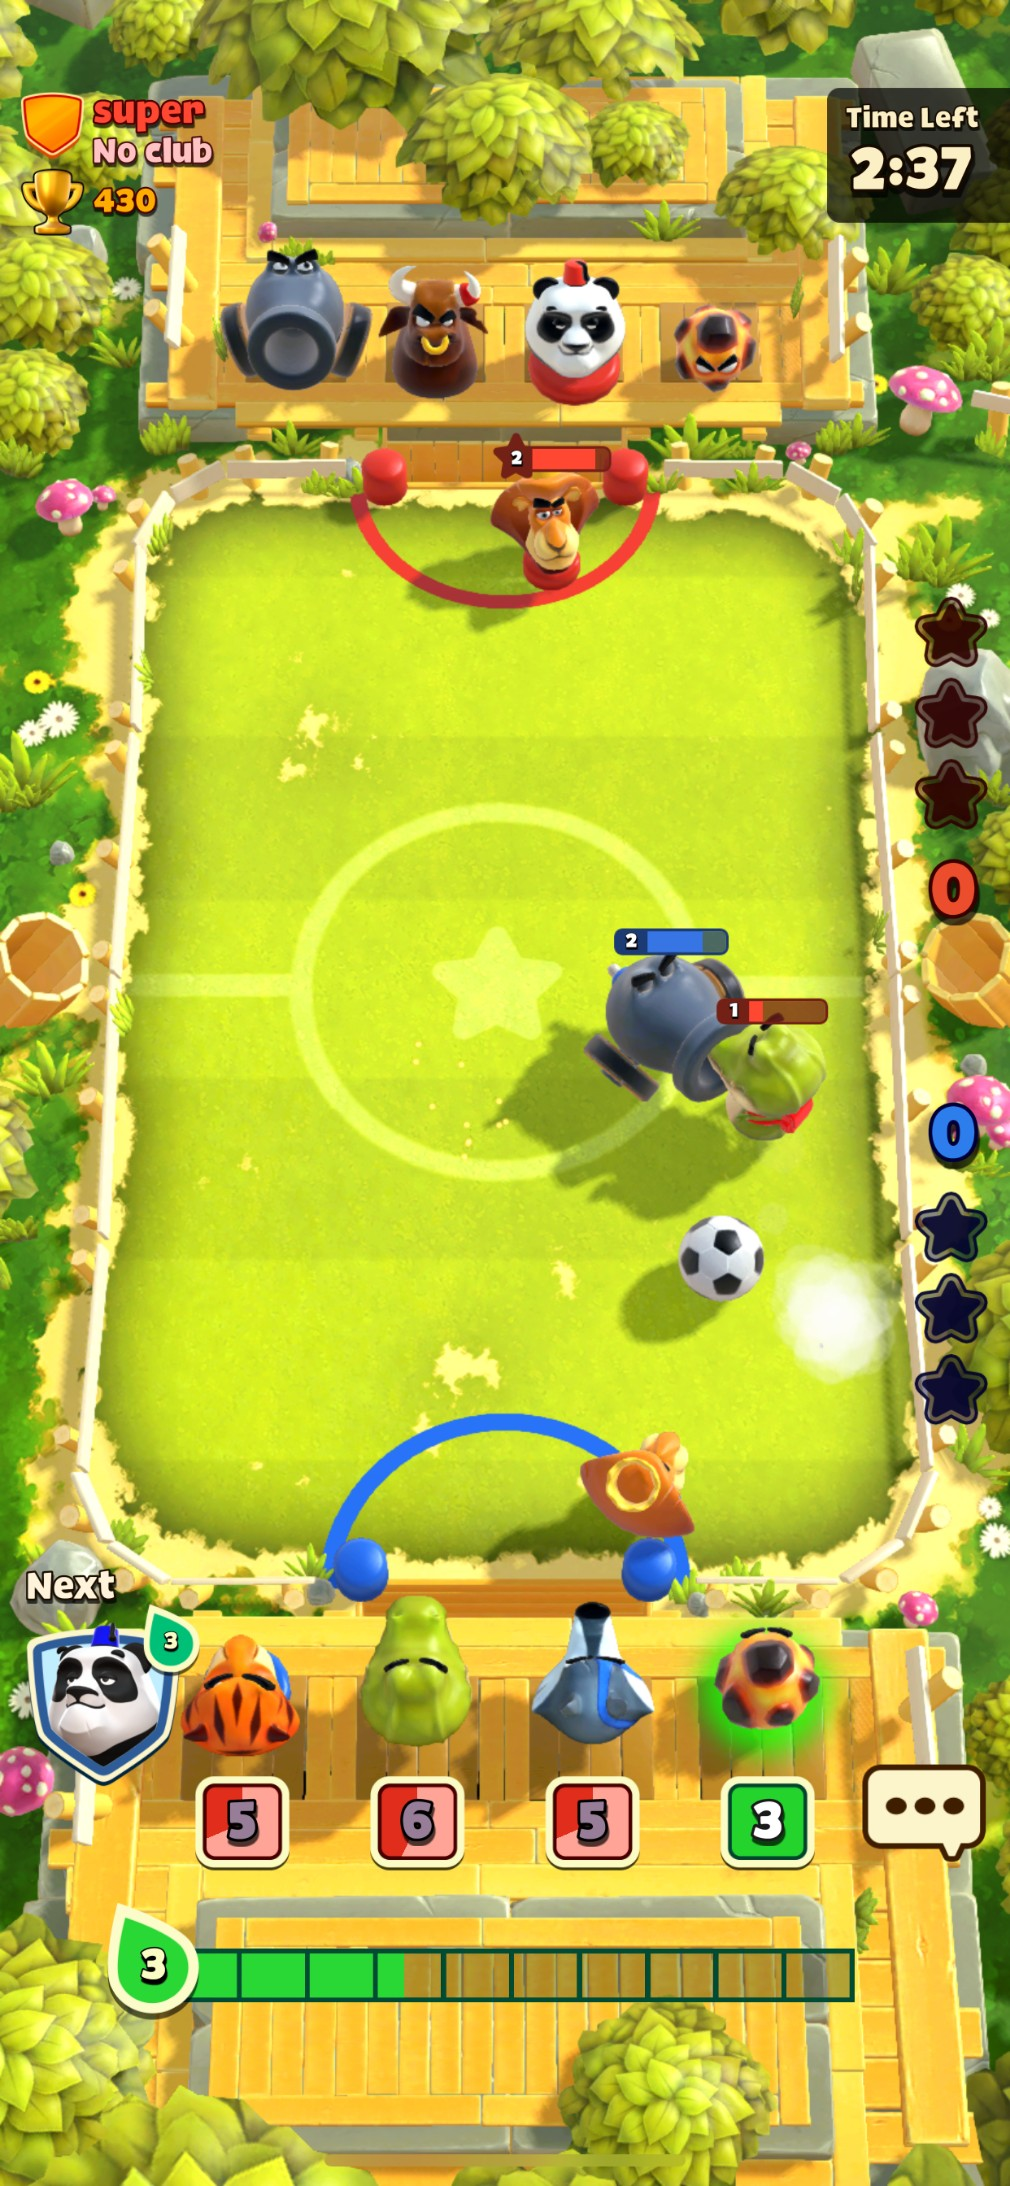 Rumble Stars Soccer iOS screenshot - Playing at the start of a match